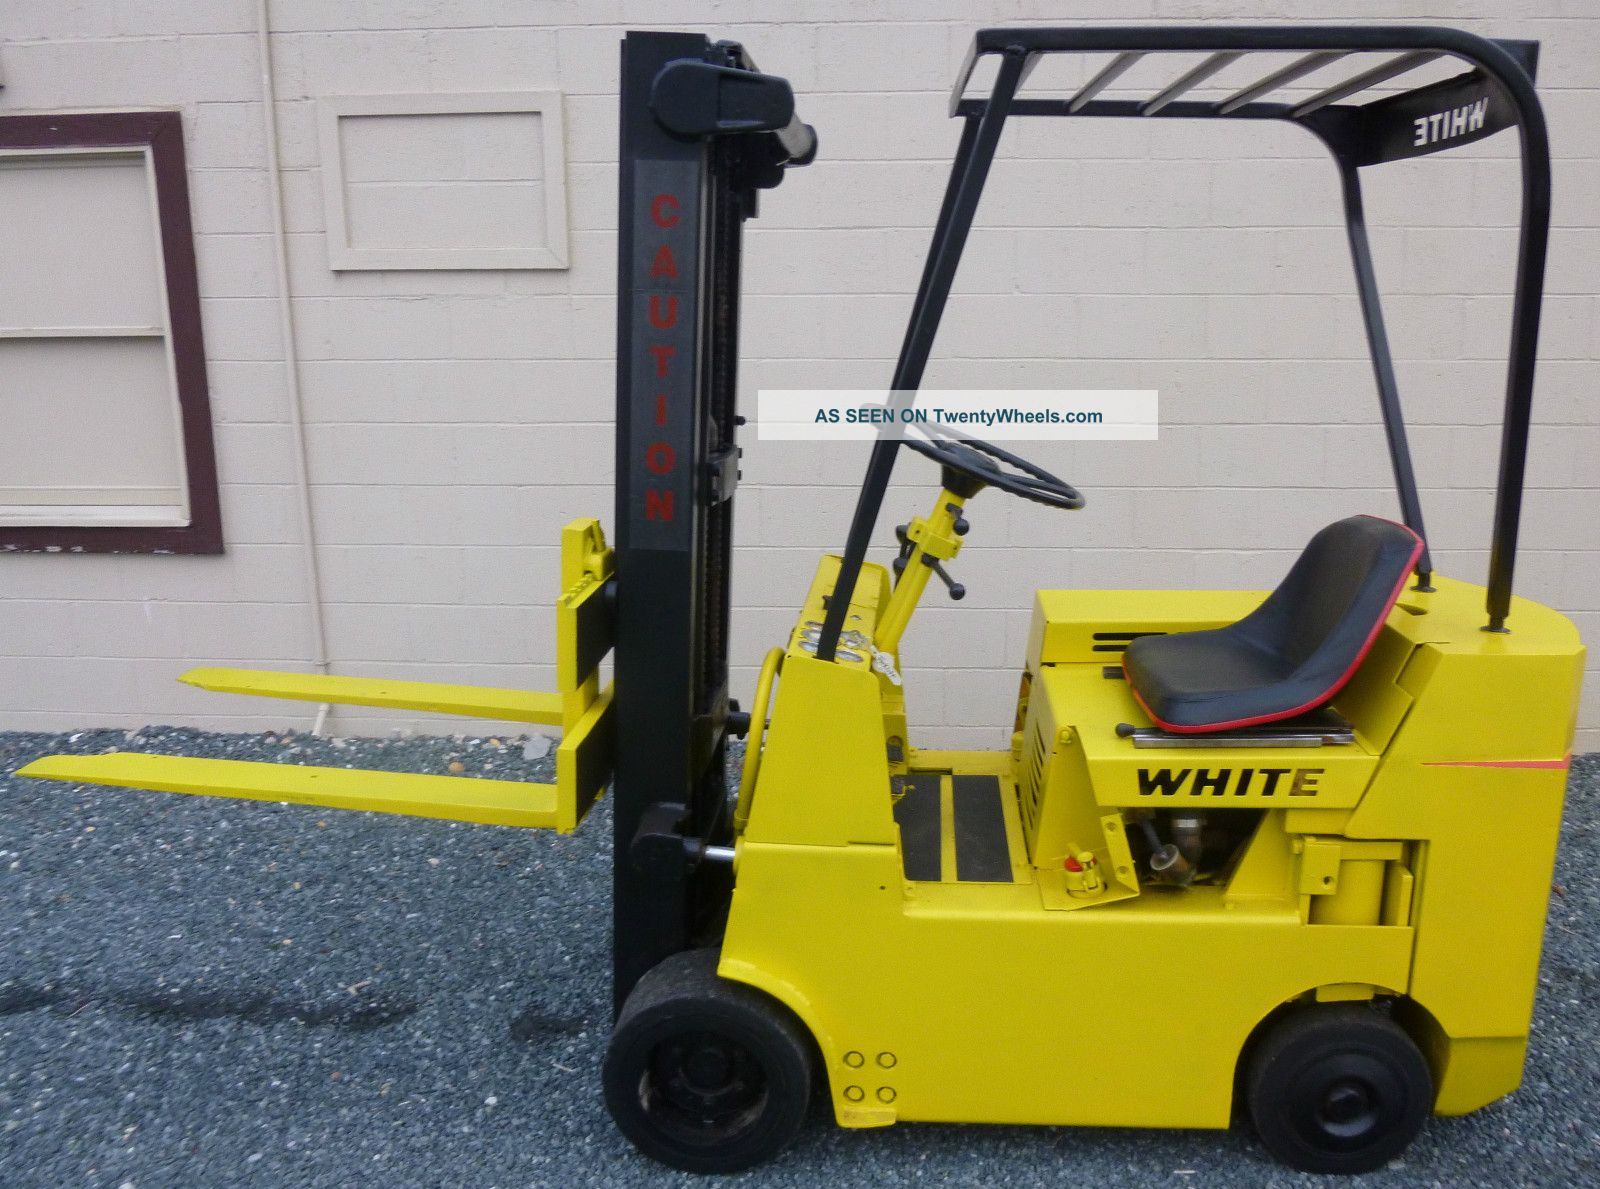 White 2 Tier Forklift Model Wc30s Gas Engine Rated For 3